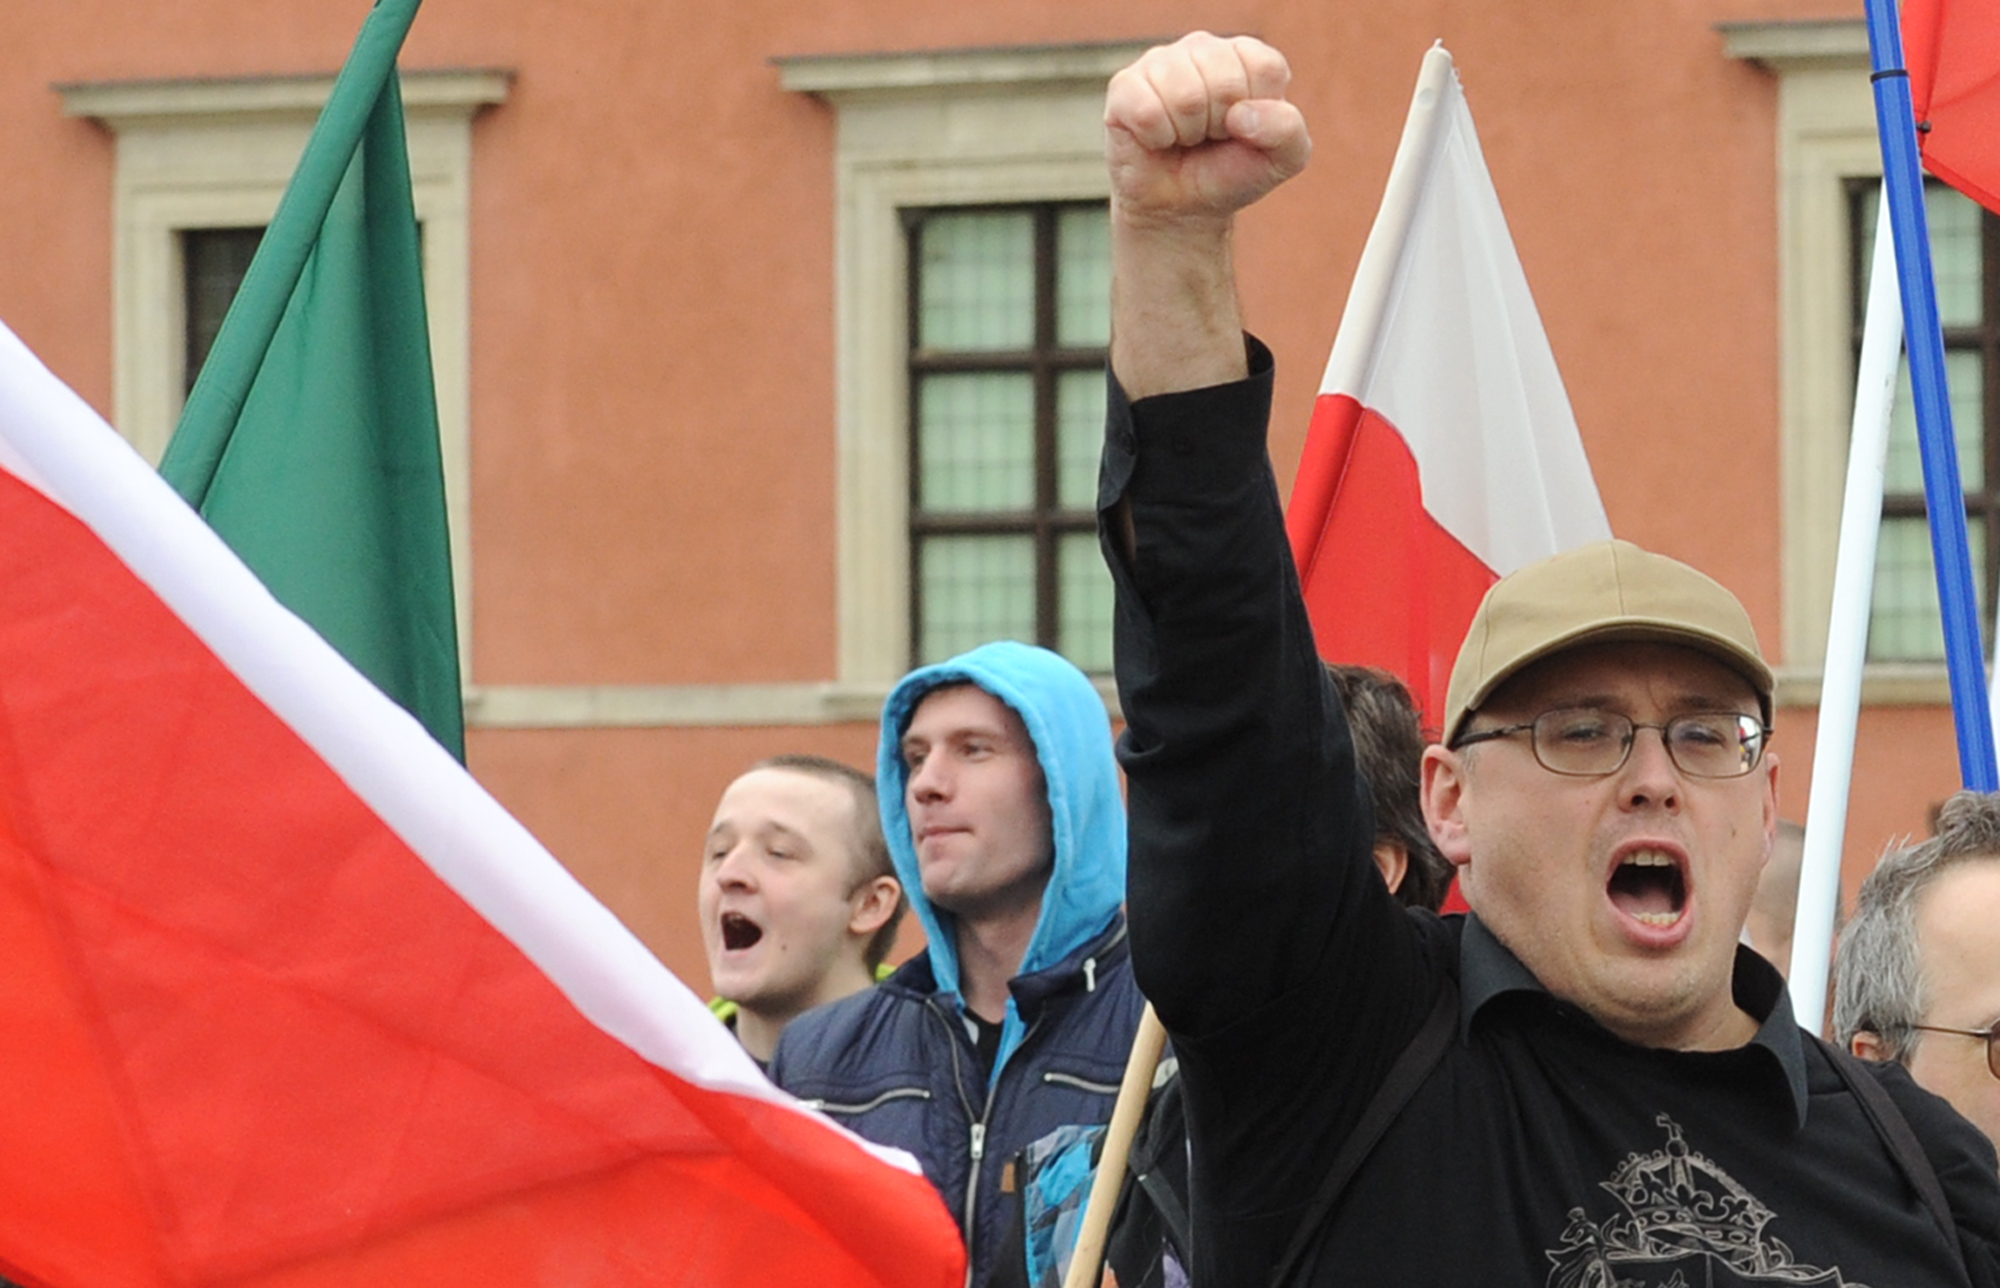 A supporter of a right wing organization gestures, as others shout slogans during an anti-migrant rally in Warsaw, Poland, Sept. 26, 2015.